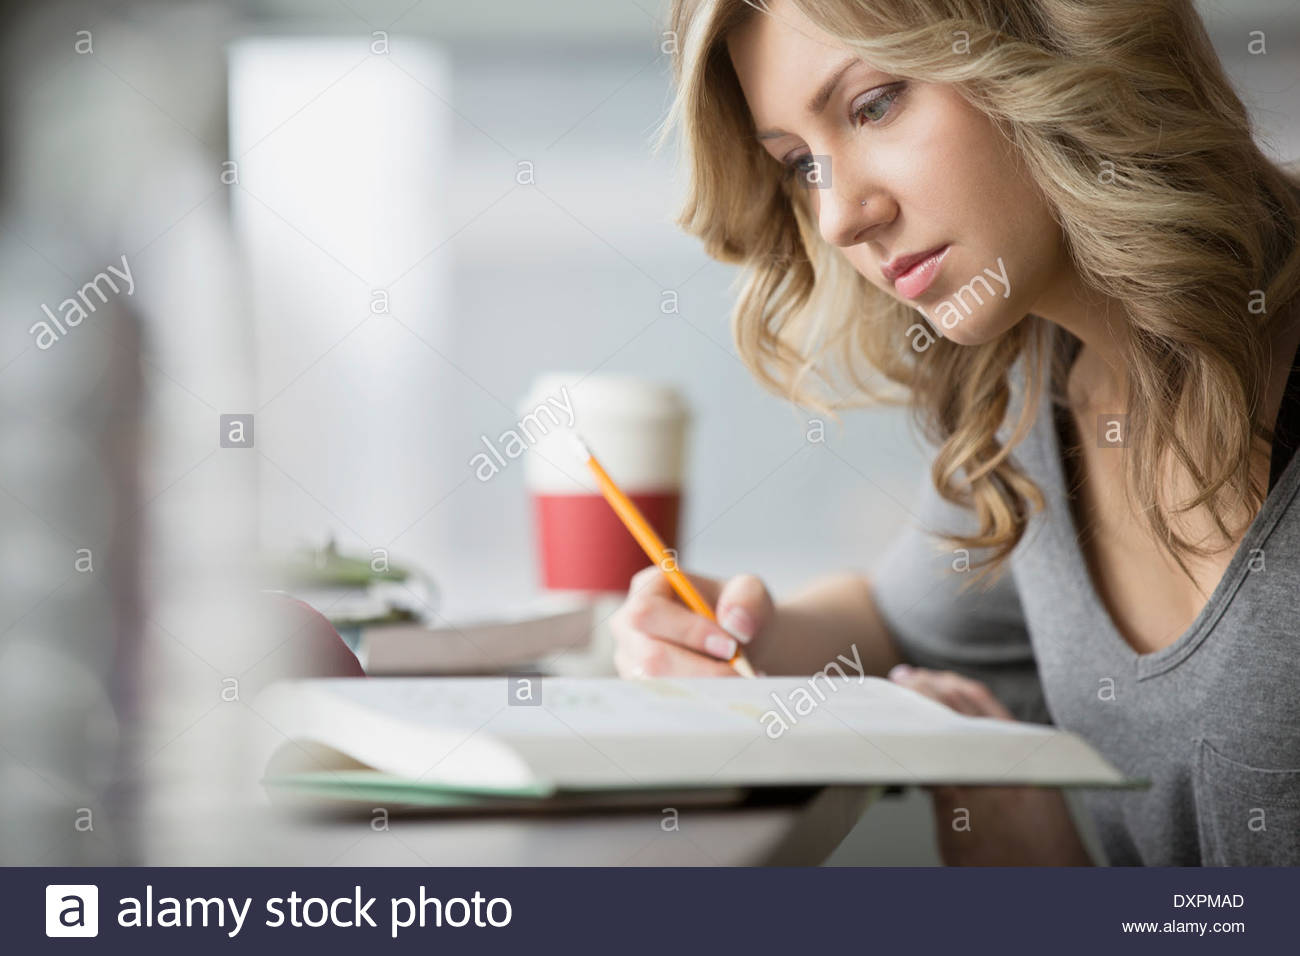 Close up of focused college student reading book - Stock Image